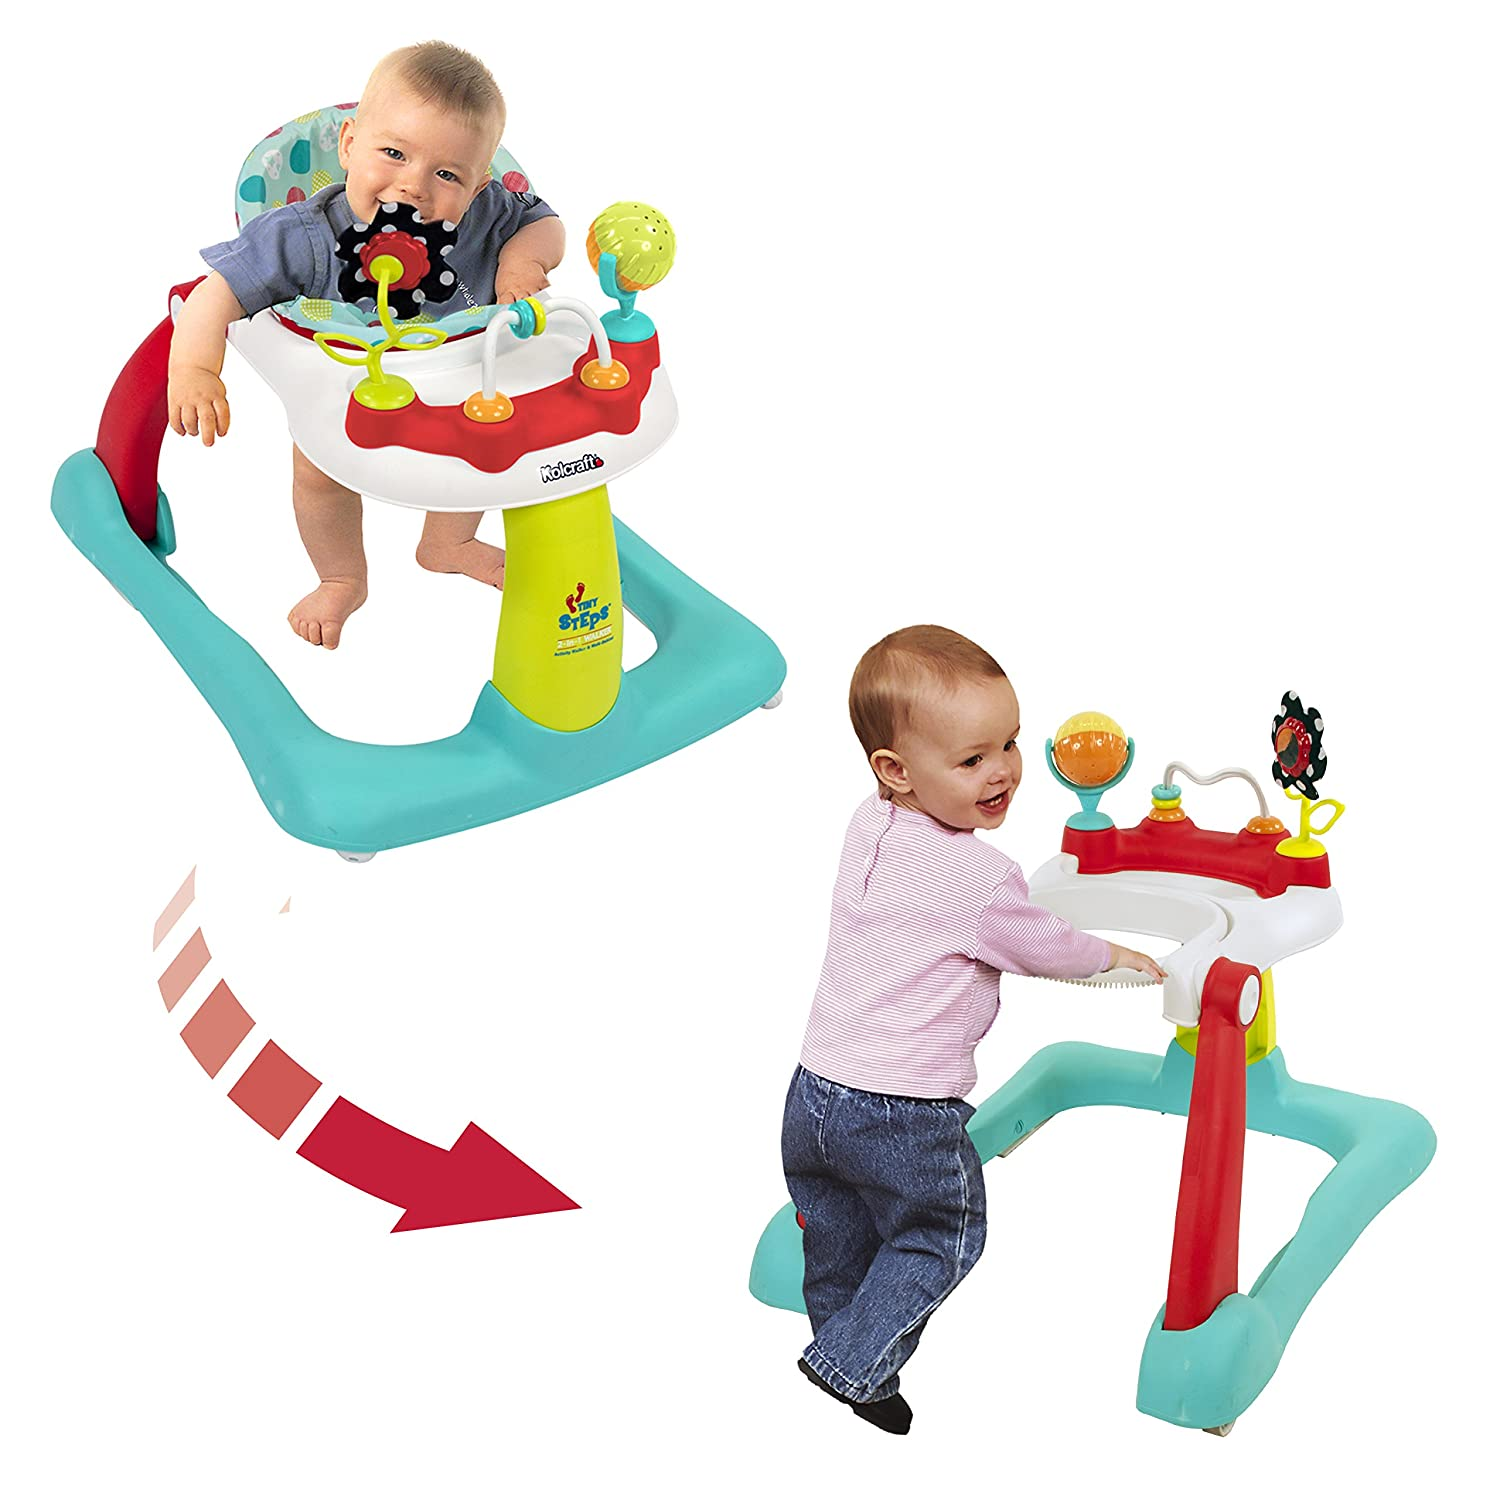 Kolcraft Tiny Steps 2-in-1 Baby Activity Walker